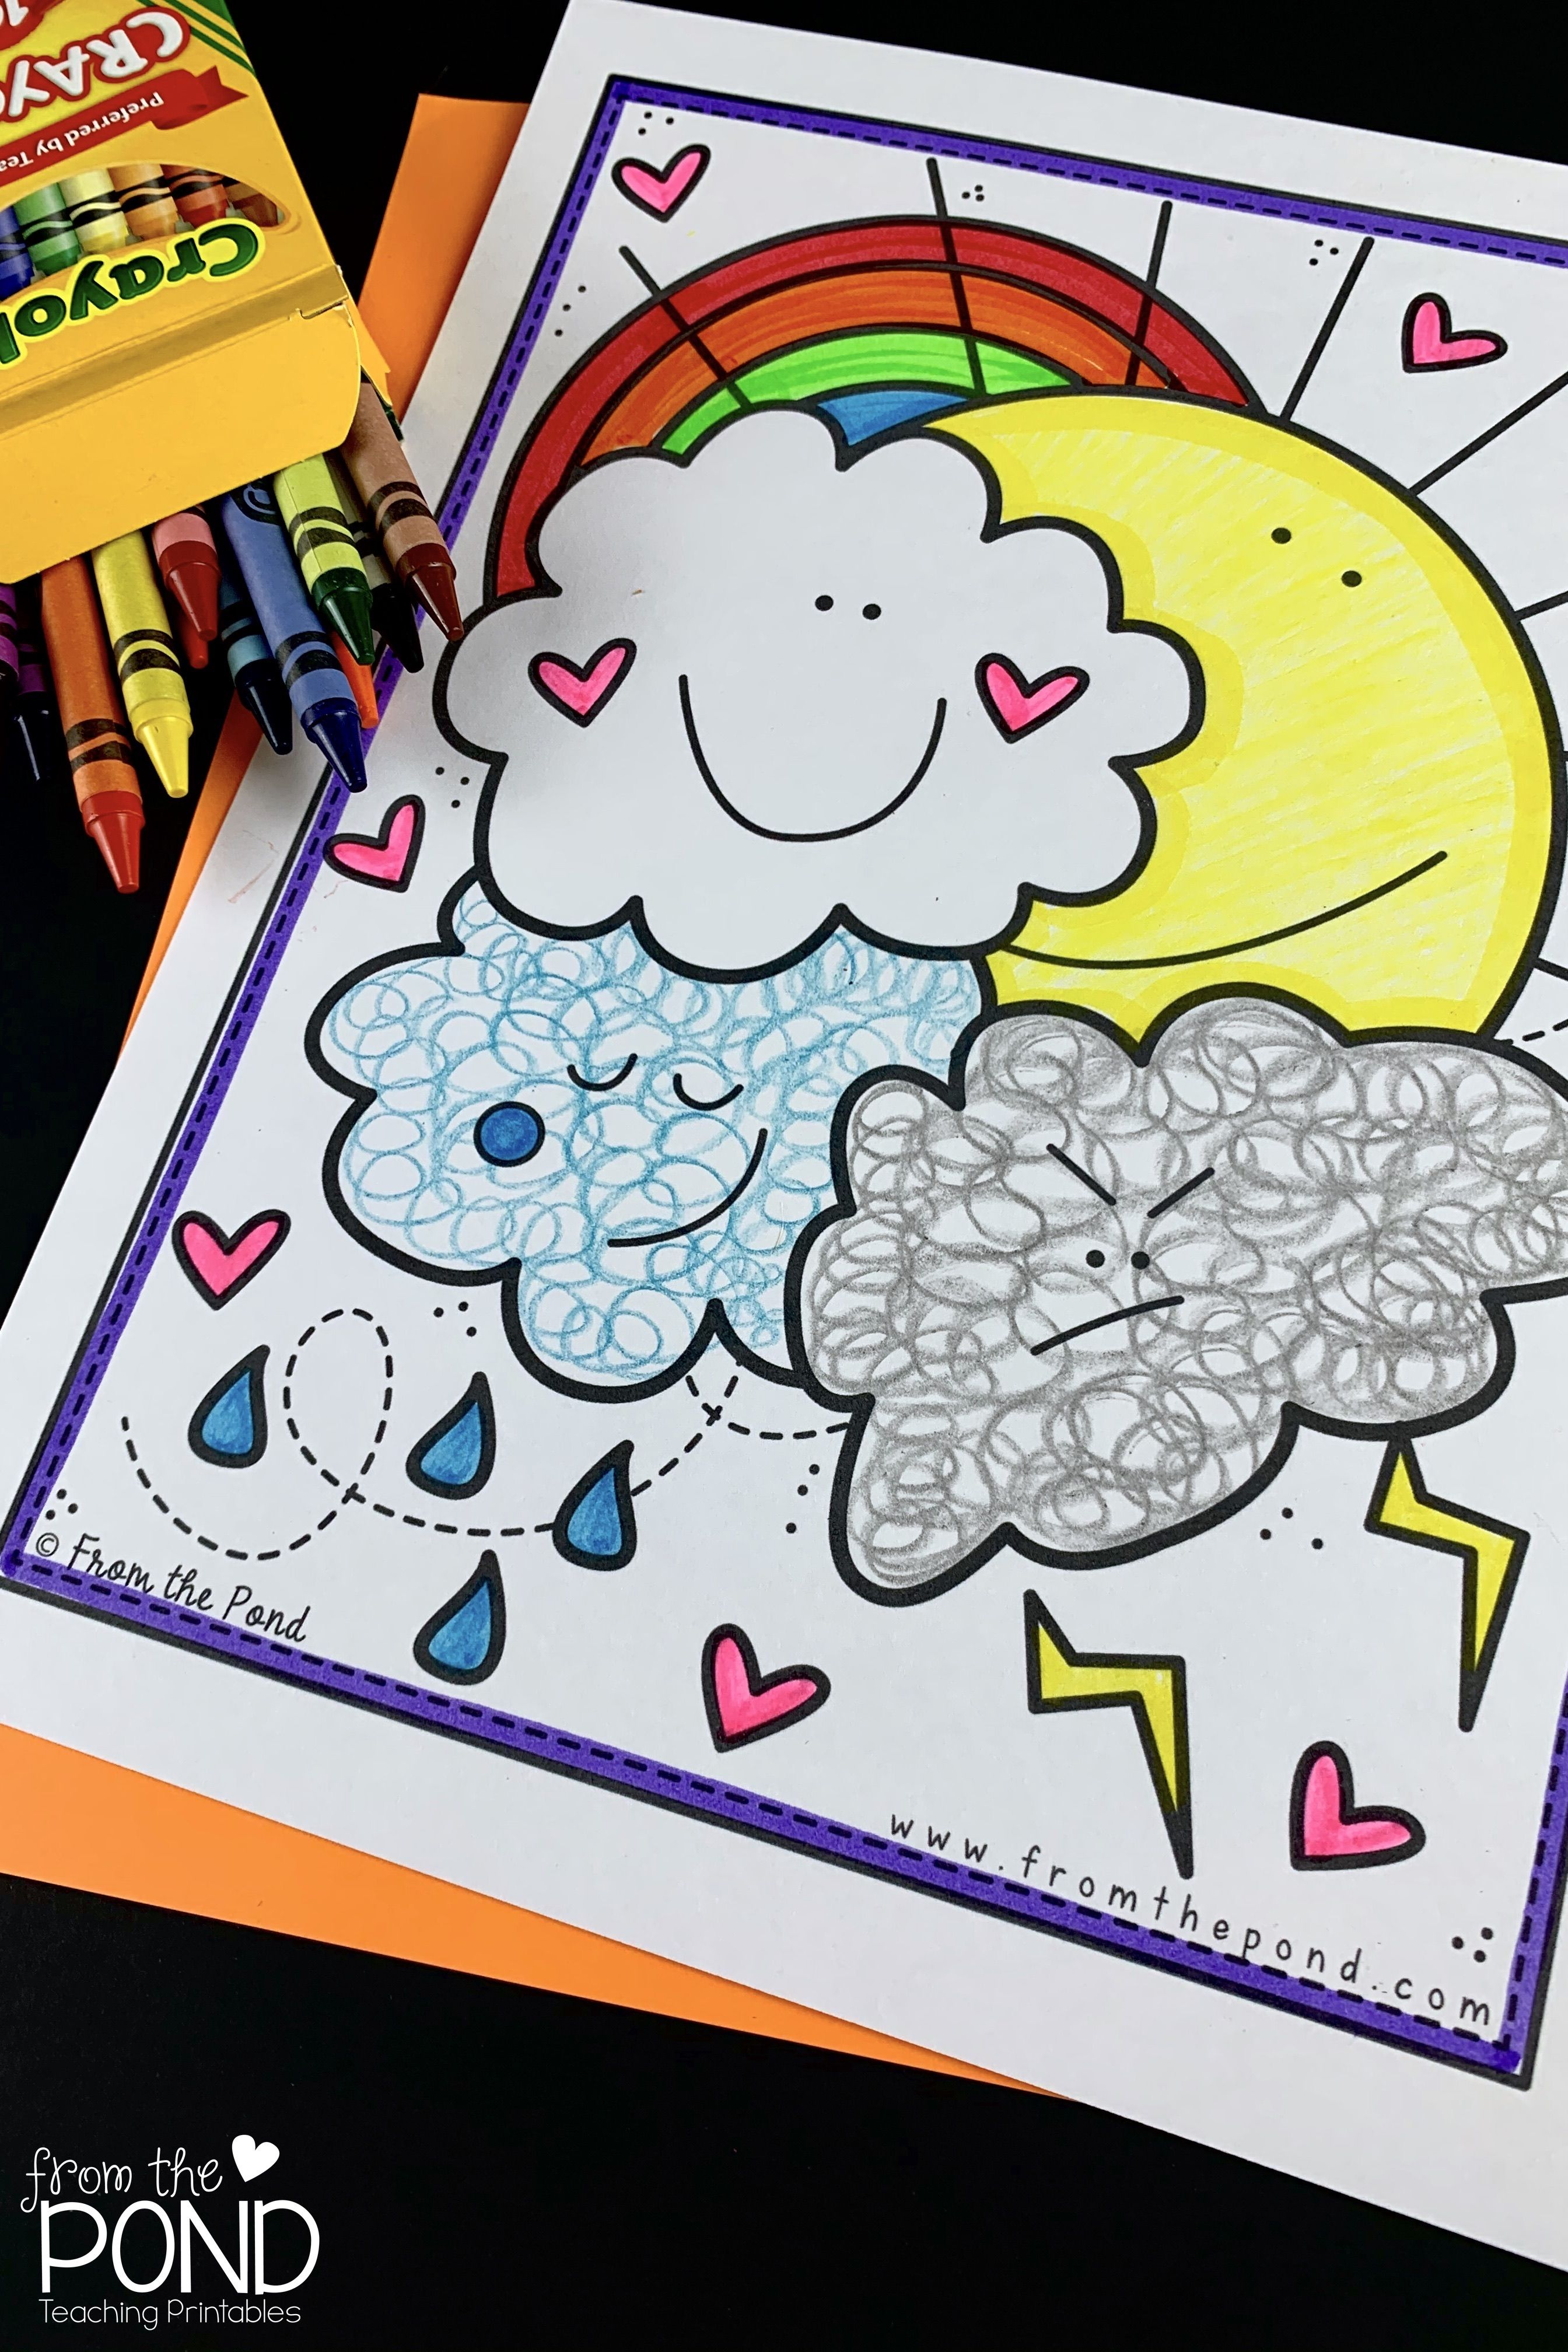 Weather Coloring Pages In 2021 Coloring Pages Free Coloring Pages Teaching Printables [ 4032 x 2688 Pixel ]